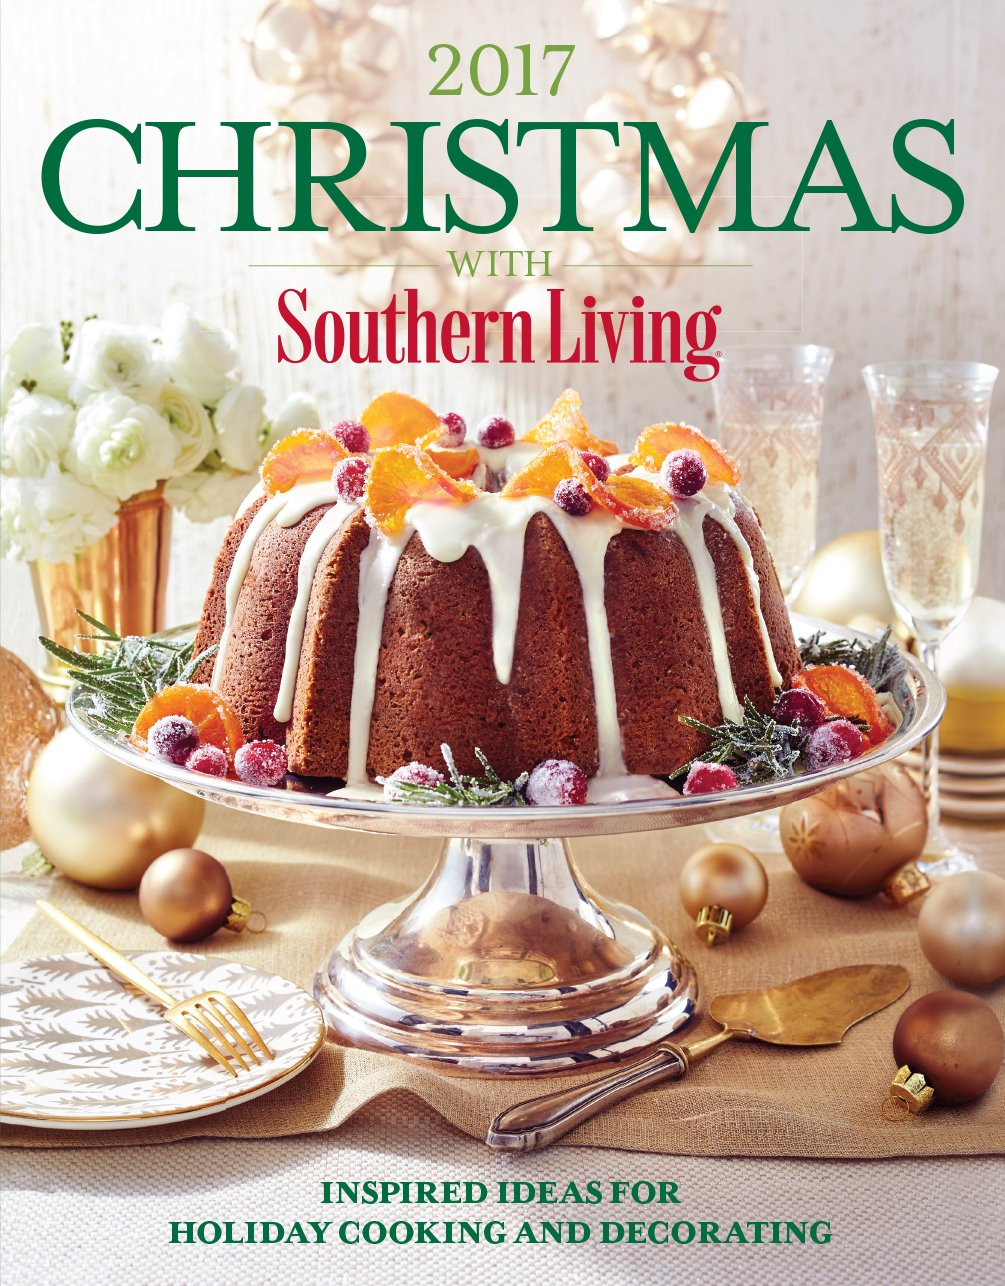 Christmas with Southern Living, 2017 : inspired ideas for holiday                cooking and decorating